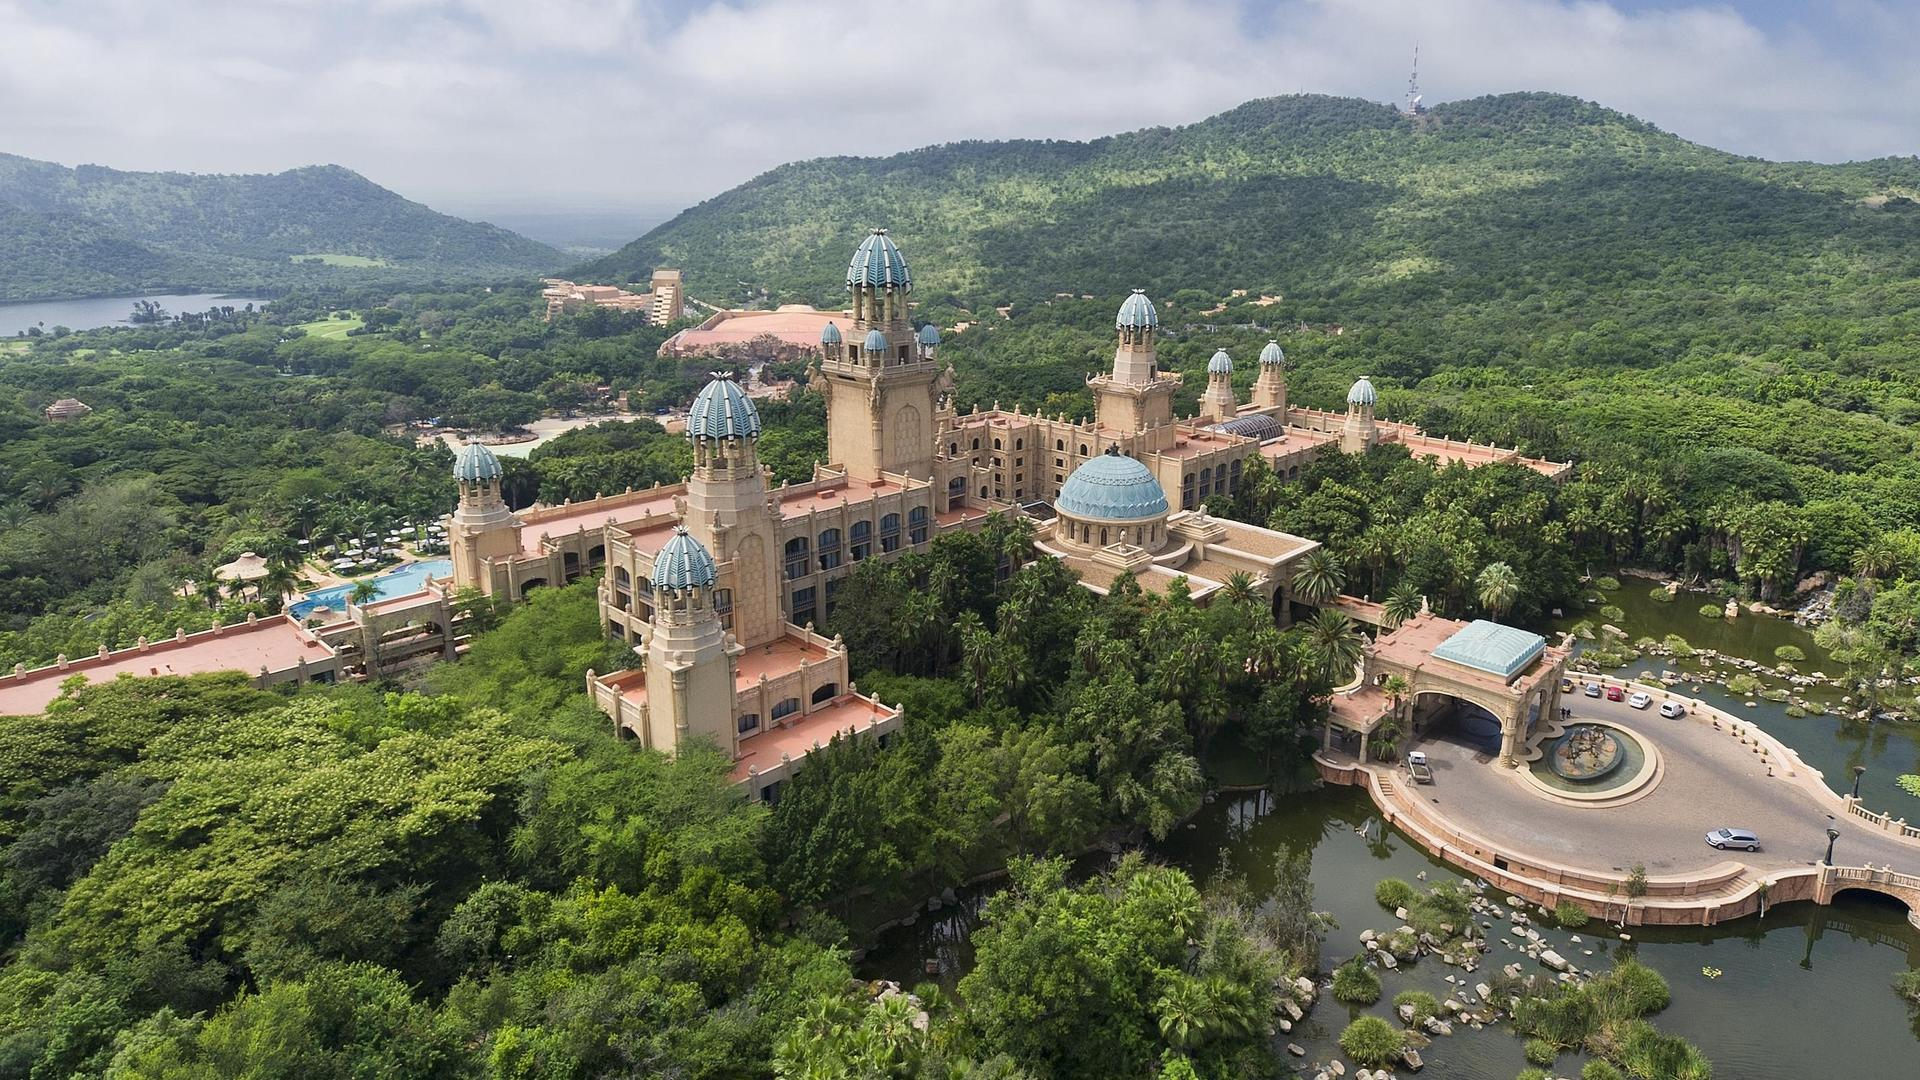 The Palace Of The Lost City >> The Palace Of The Lost City Home